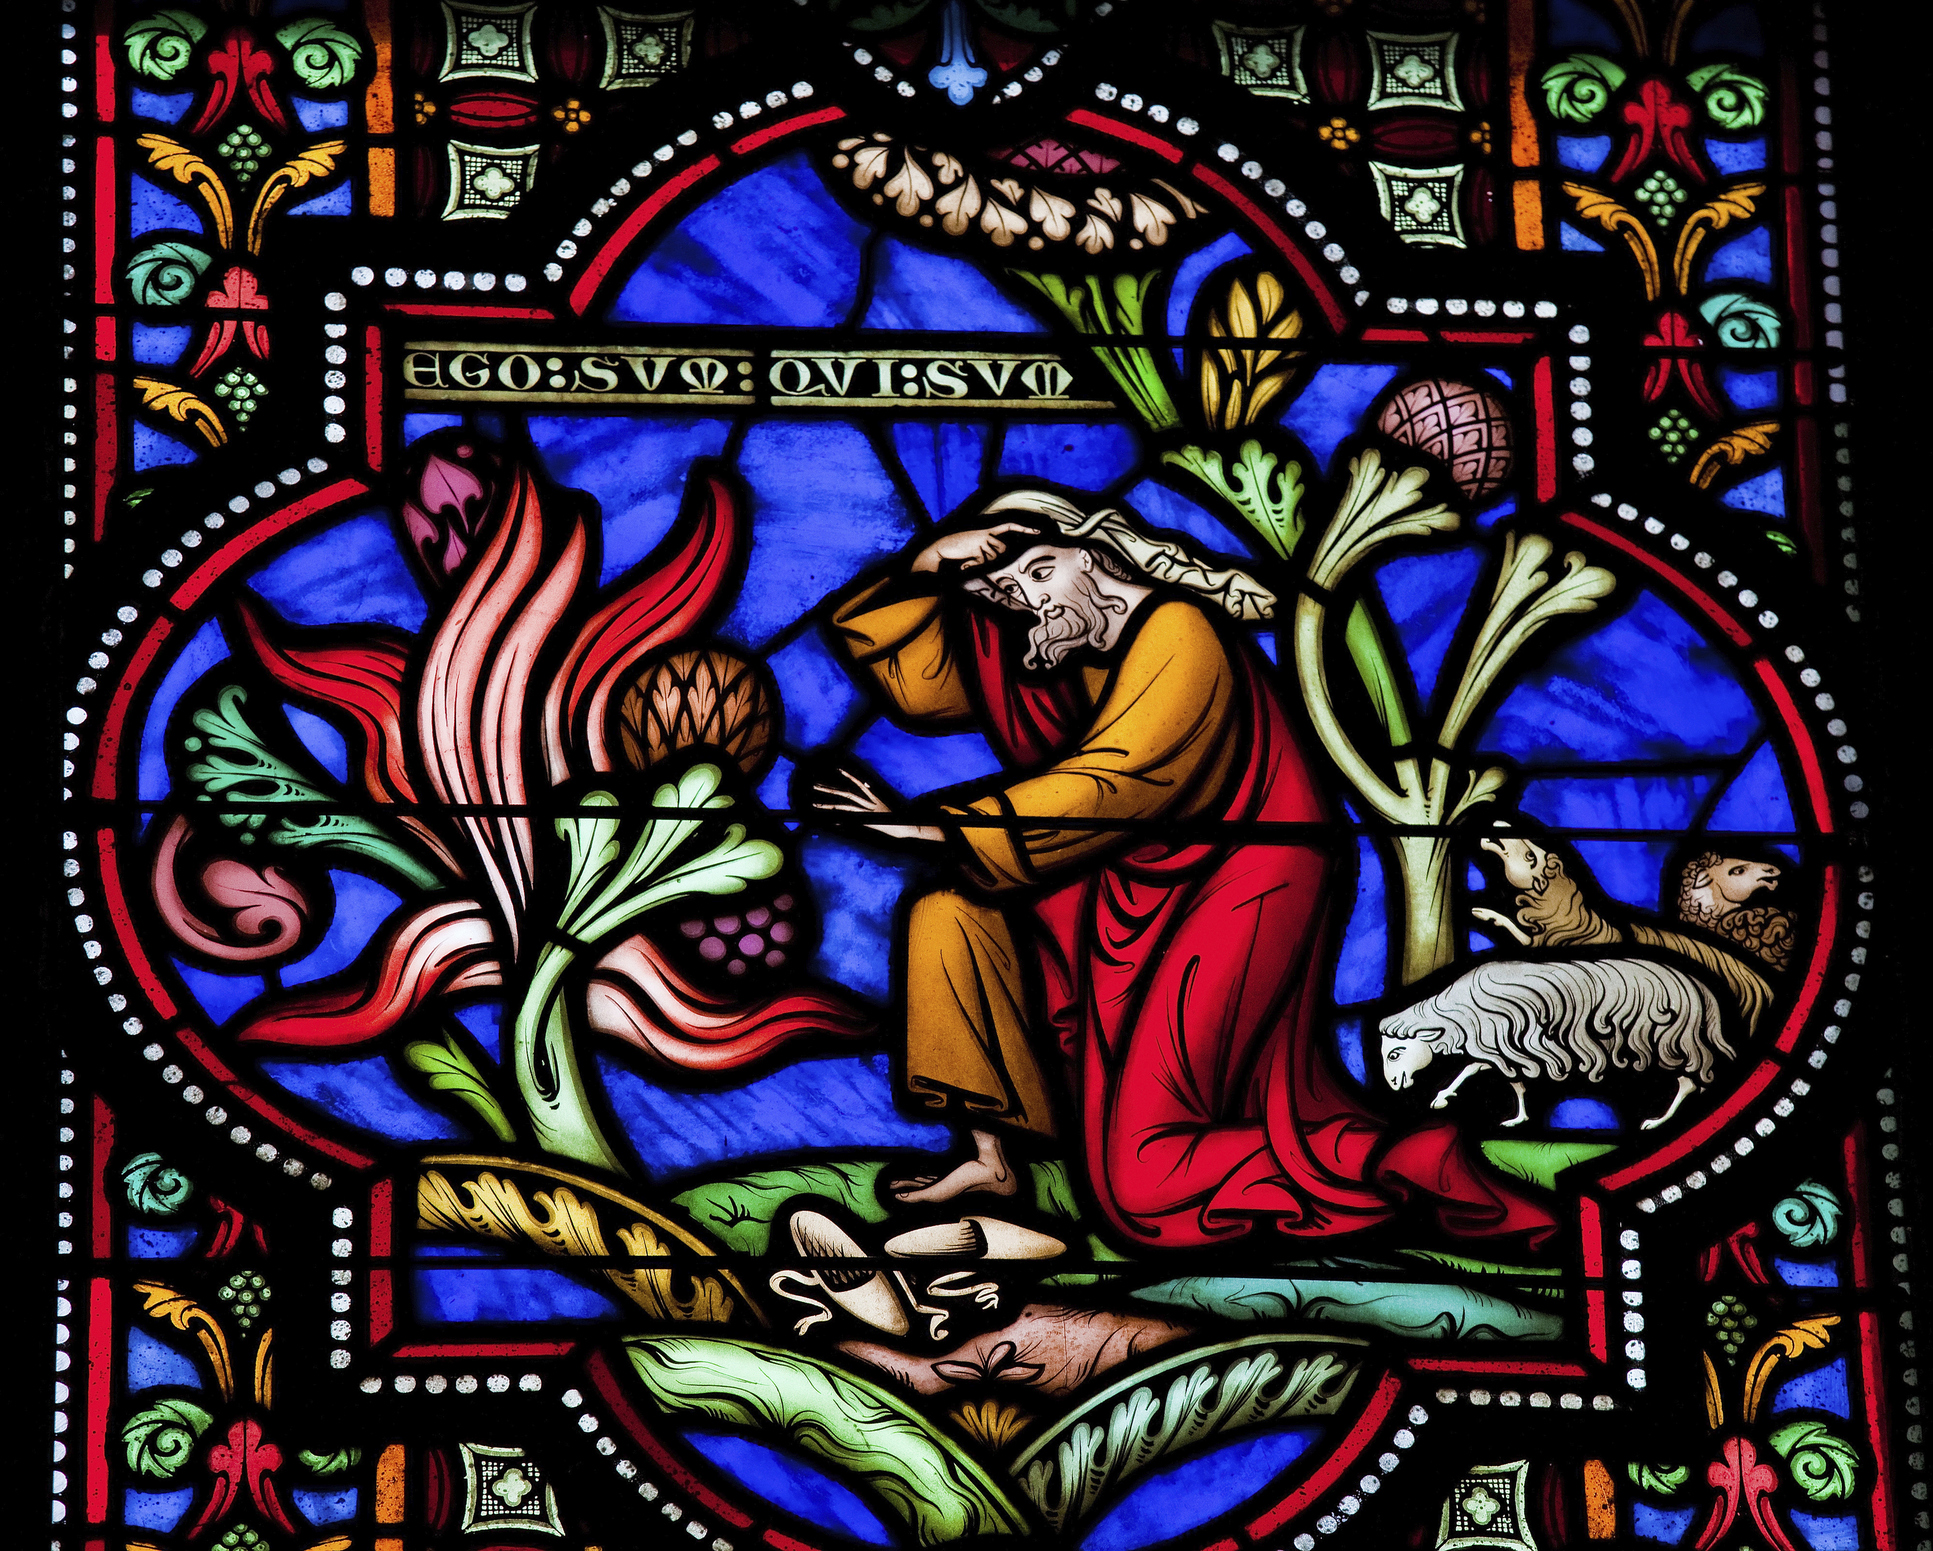 Moses and the burning bush on Mount Horeb. This window is located in the cathedral of Brussels and was created in 1866, no property release is required.